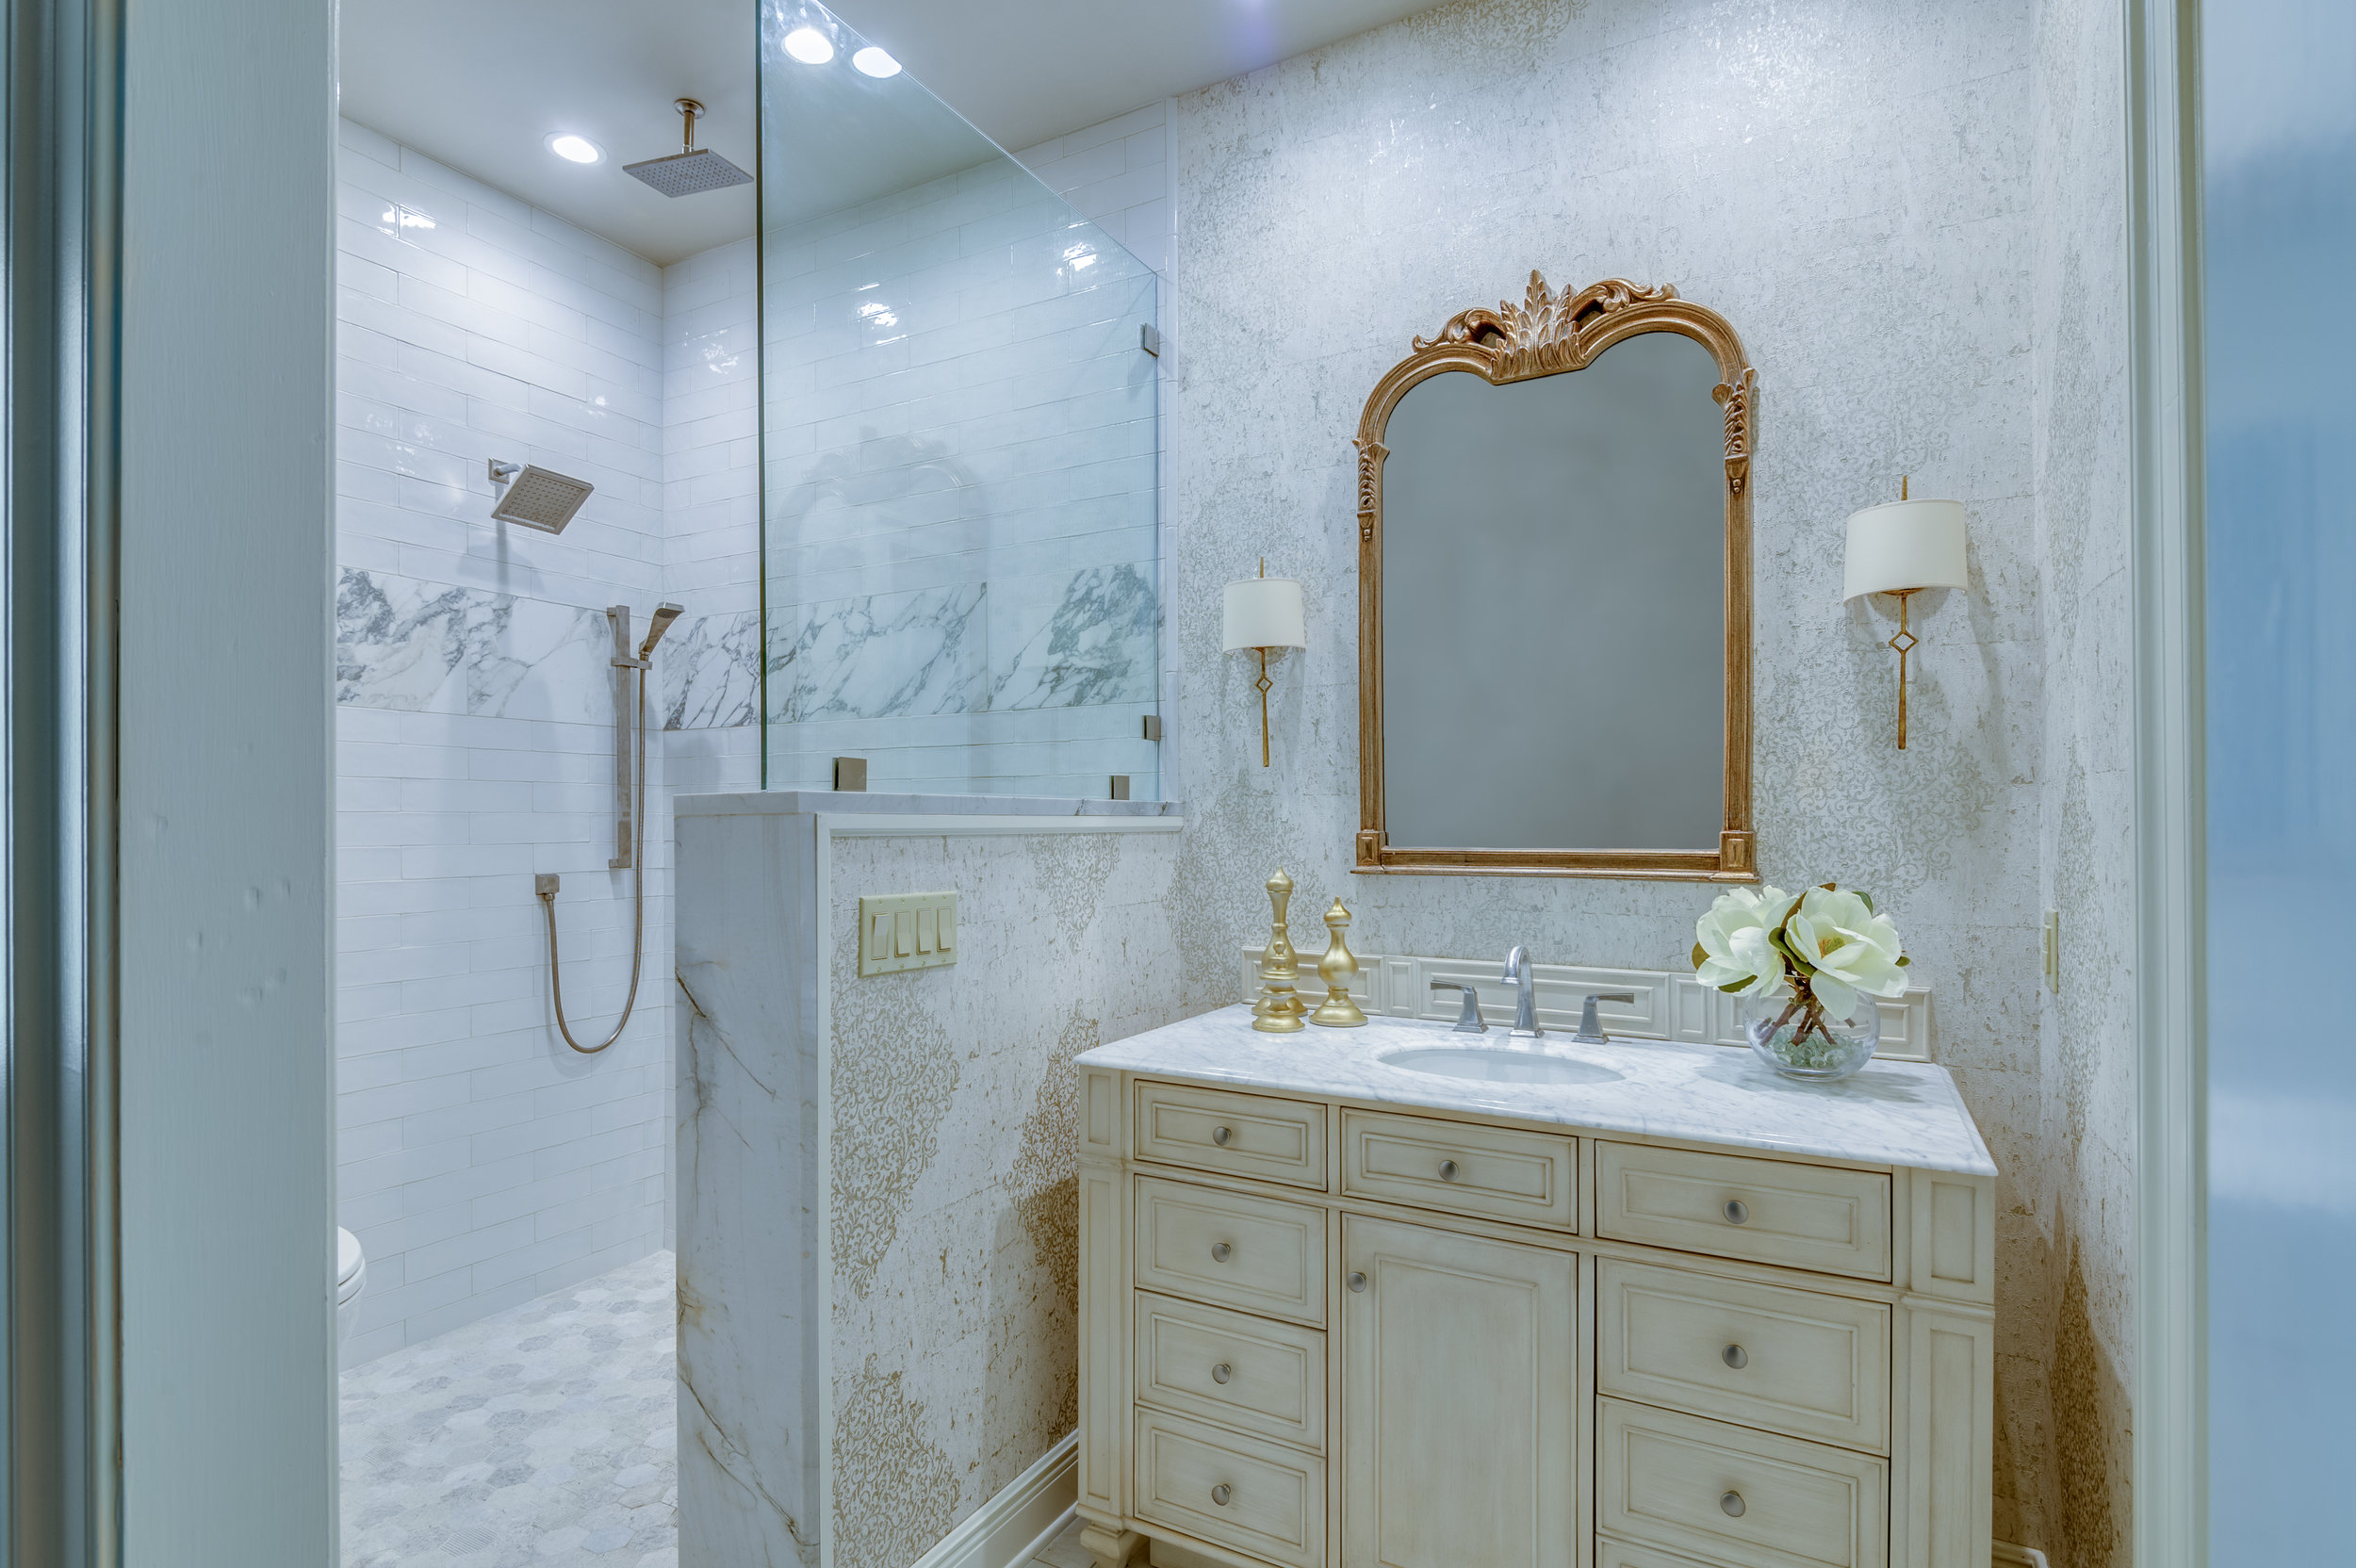 master bathroom vanity ideas traditional interior design metairie khb interiors